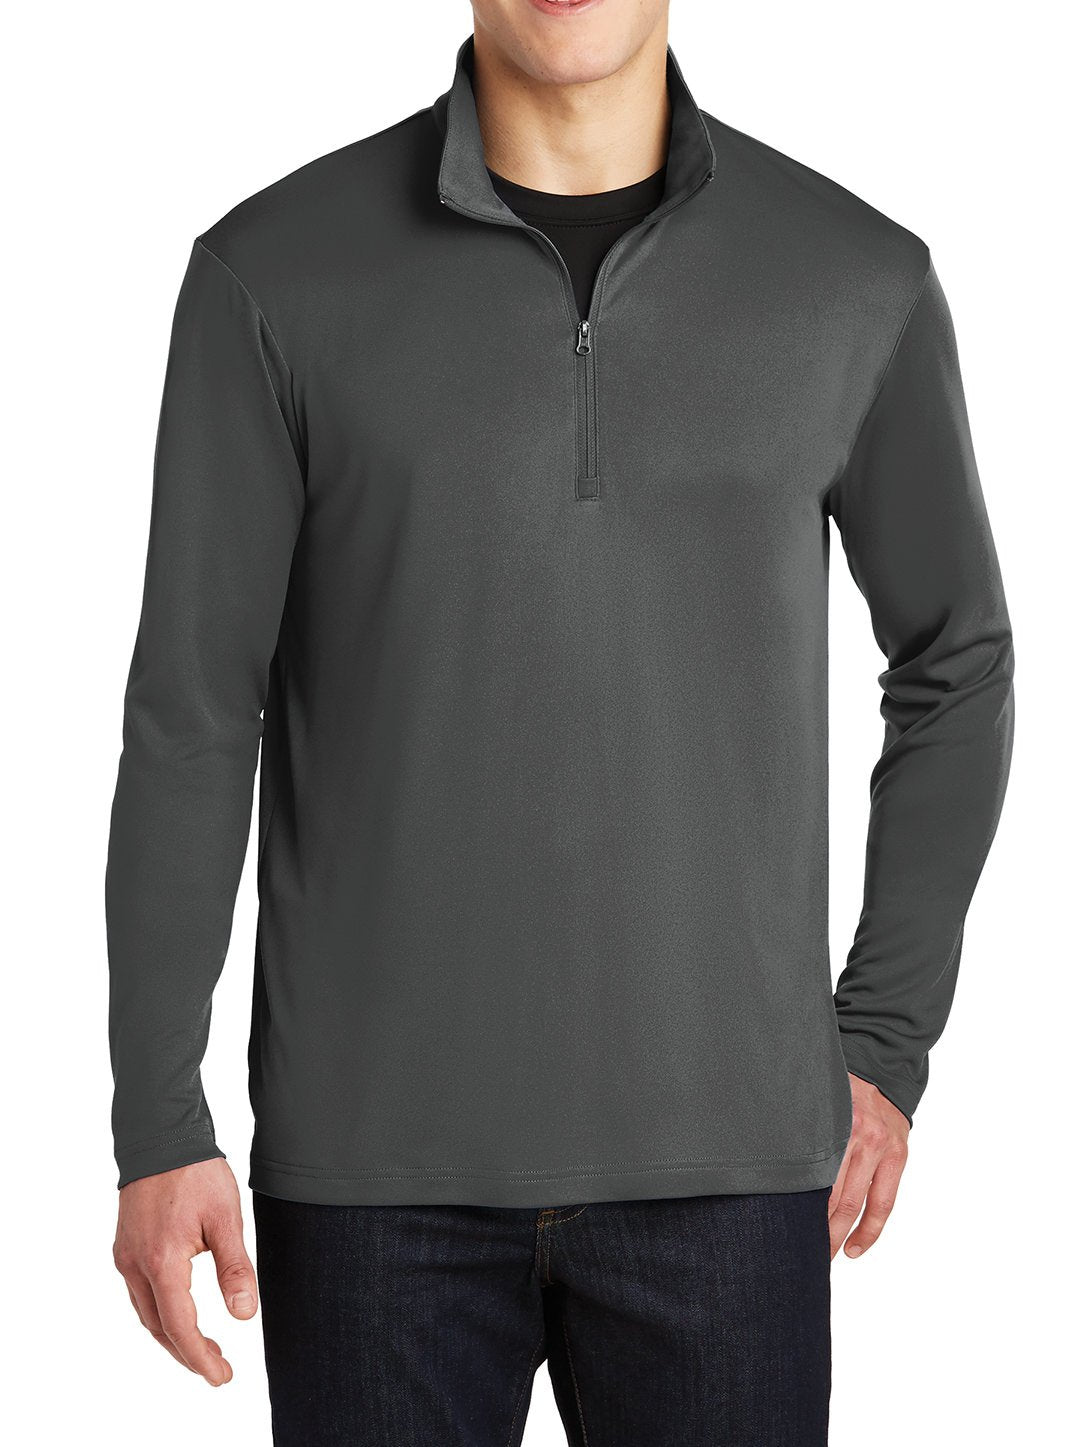 PosiCharge Competitor Cadet Collar 1/4-Zip Pullover Iron Grey